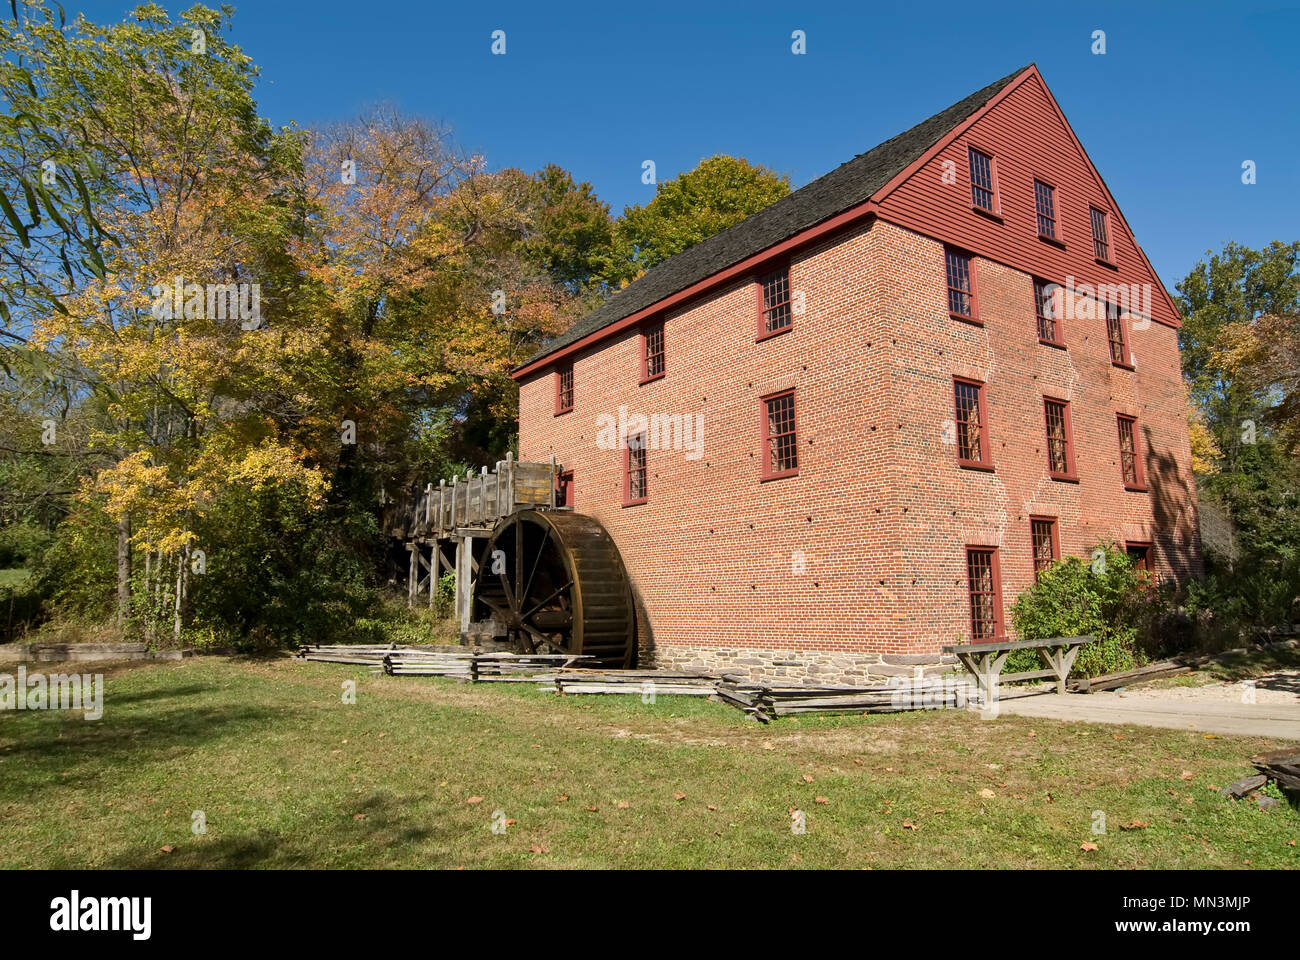 The historic Colvin Run Mill in Great Falls Virginia. This restored mill is still in working order and actual ground mill can be purchased. - Stock Image